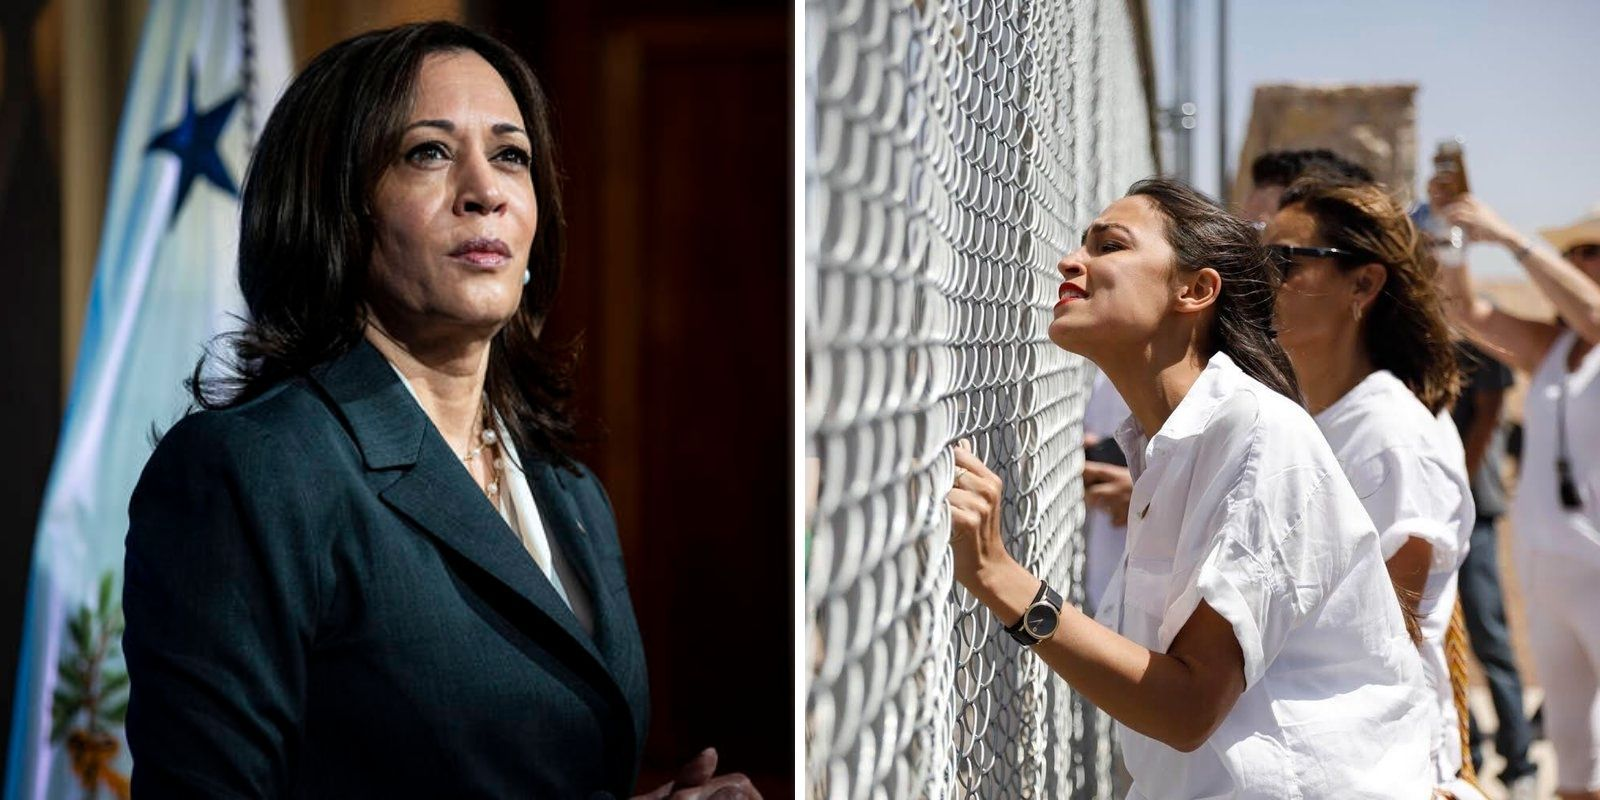 BREAKING: AOC slams 'disappointing' Kamala speech urging migrants not to come